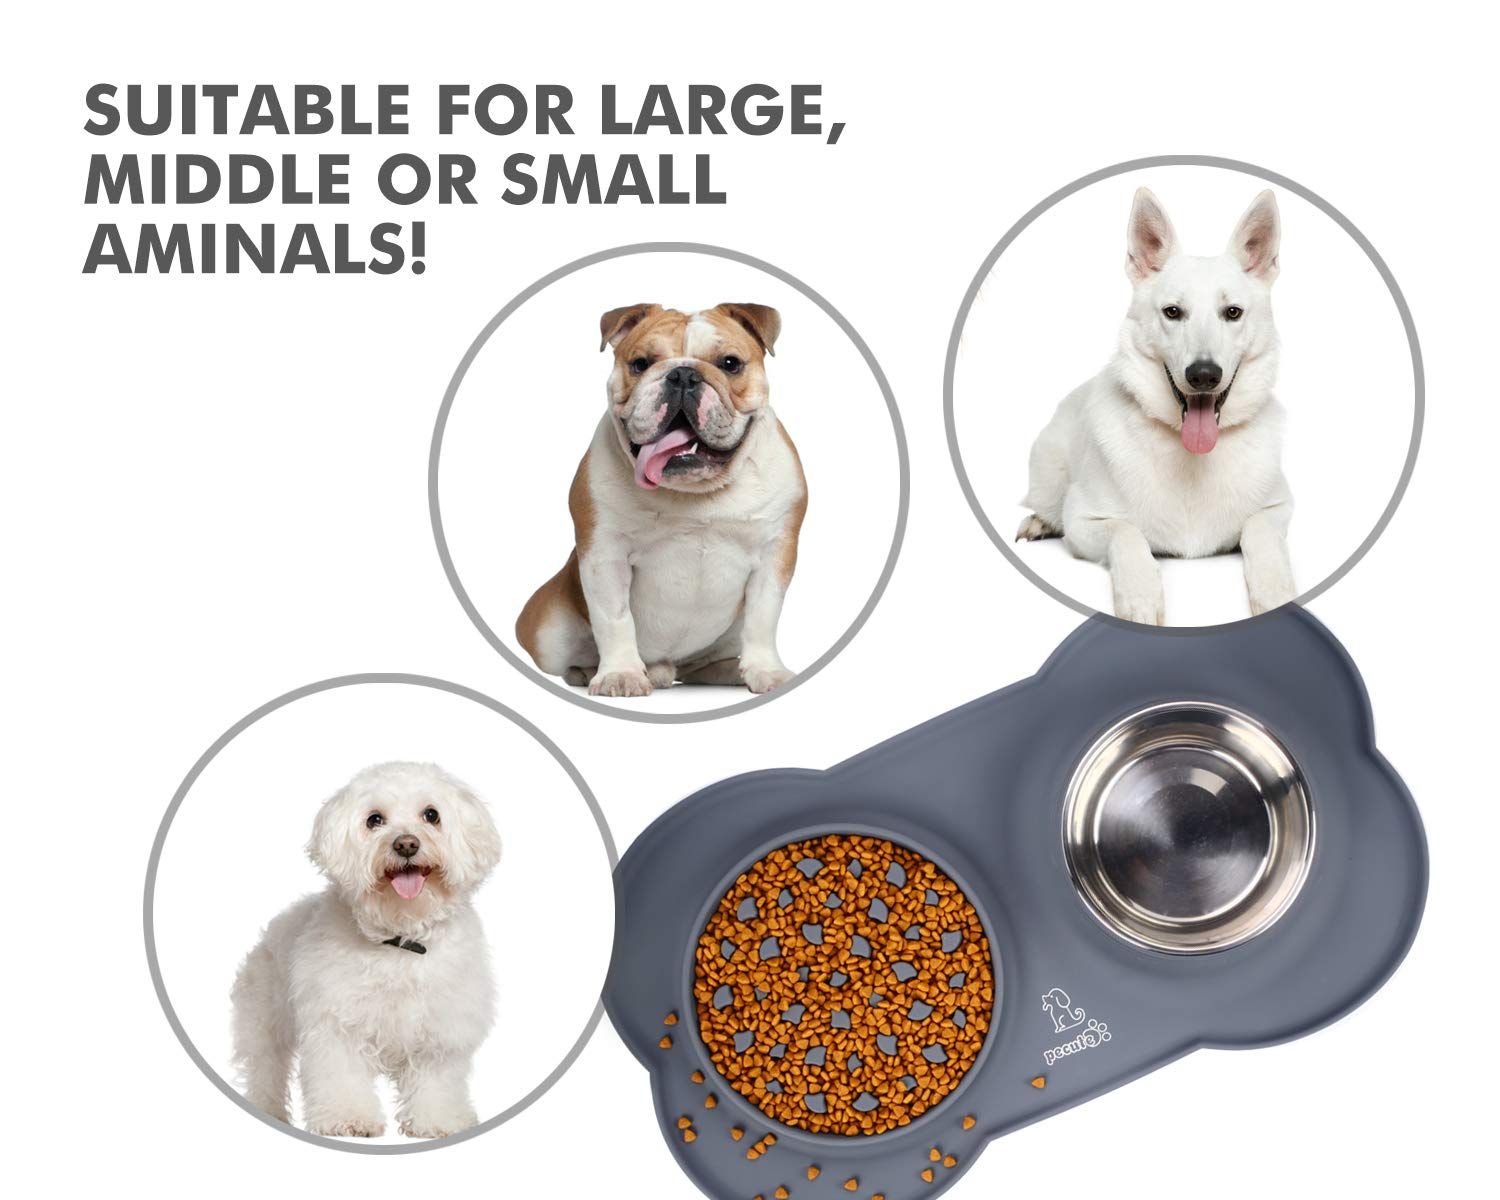 Pecute 3-in-1 Slow Eating Dog Bowls with Non Slip Mat - Safe Silicone Interactive Fun Slow Feeders for Dogs - Stainless Steel Bowls Non Spill Mats Tray - Great for Small Medium Dogs Cats Slow Feeding